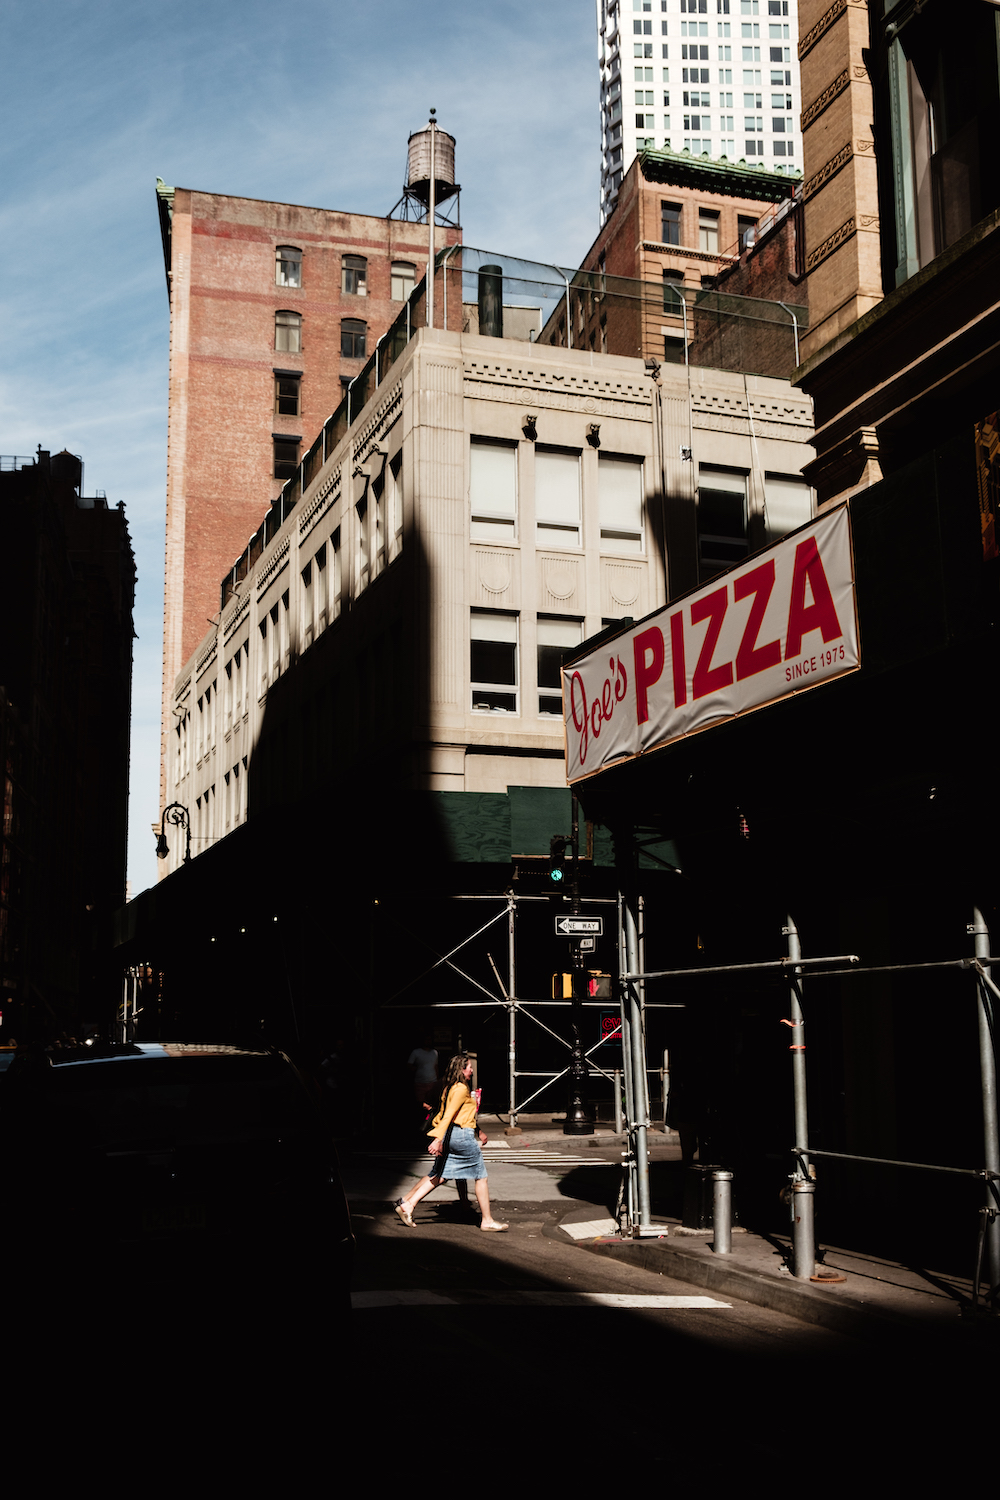 $1 pizza stores in New York Travel and Street Photography by Ben Holbrook from DriftwoodJournals.com-8744